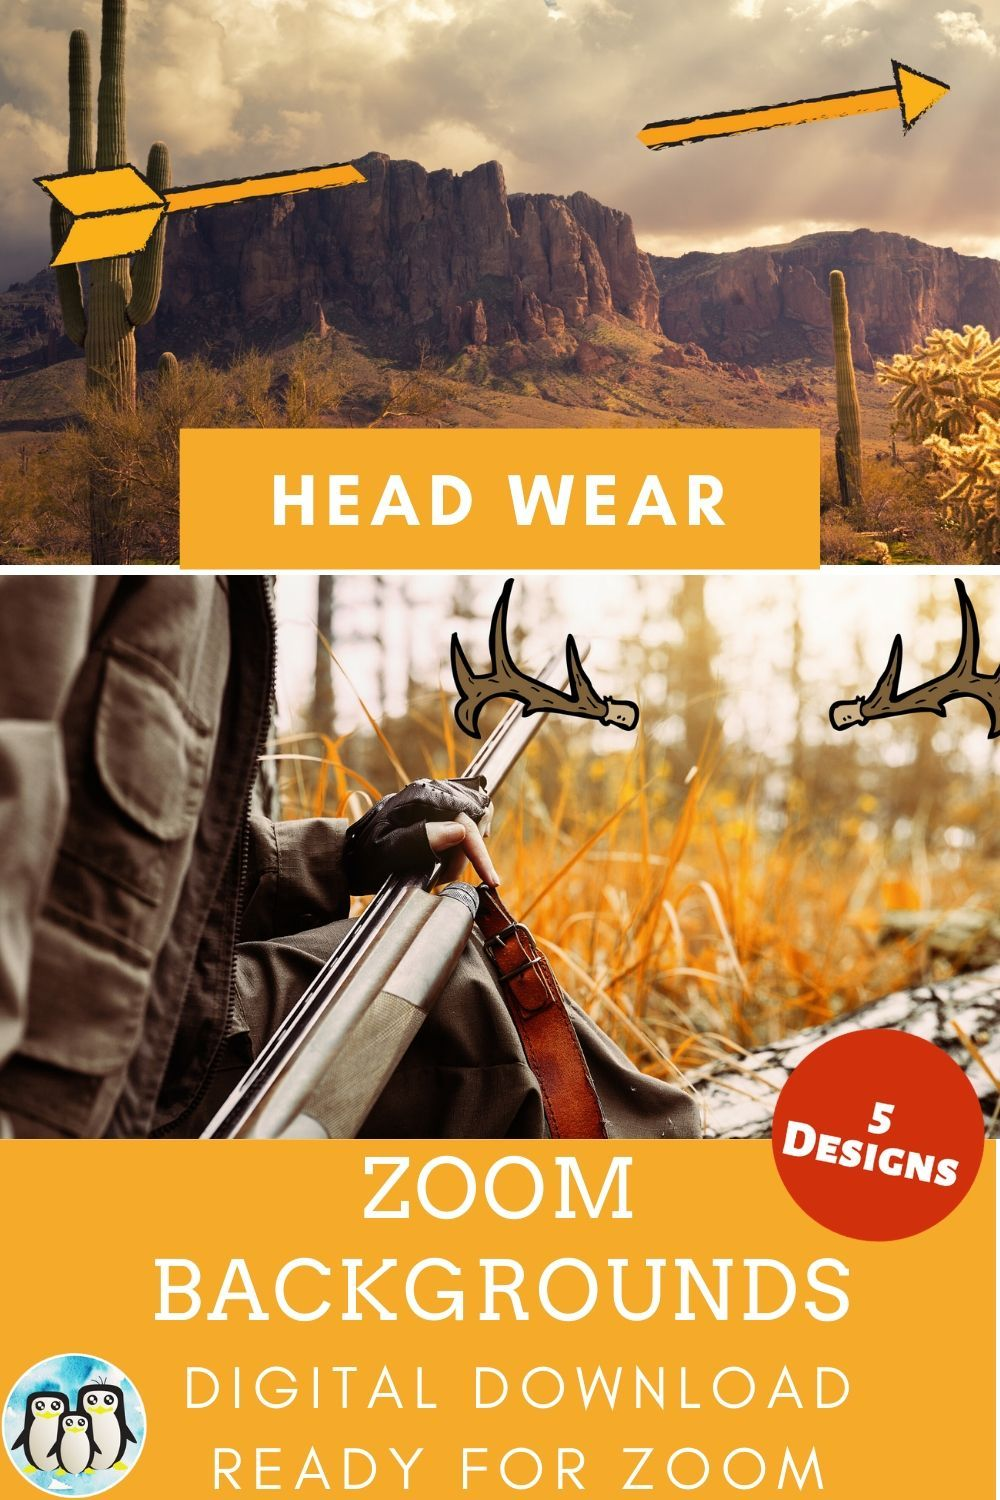 Zoom Backgrounds Head Wear Images To Make Your Zoom Calls More Fun Zoom Call Meetings Humor Background